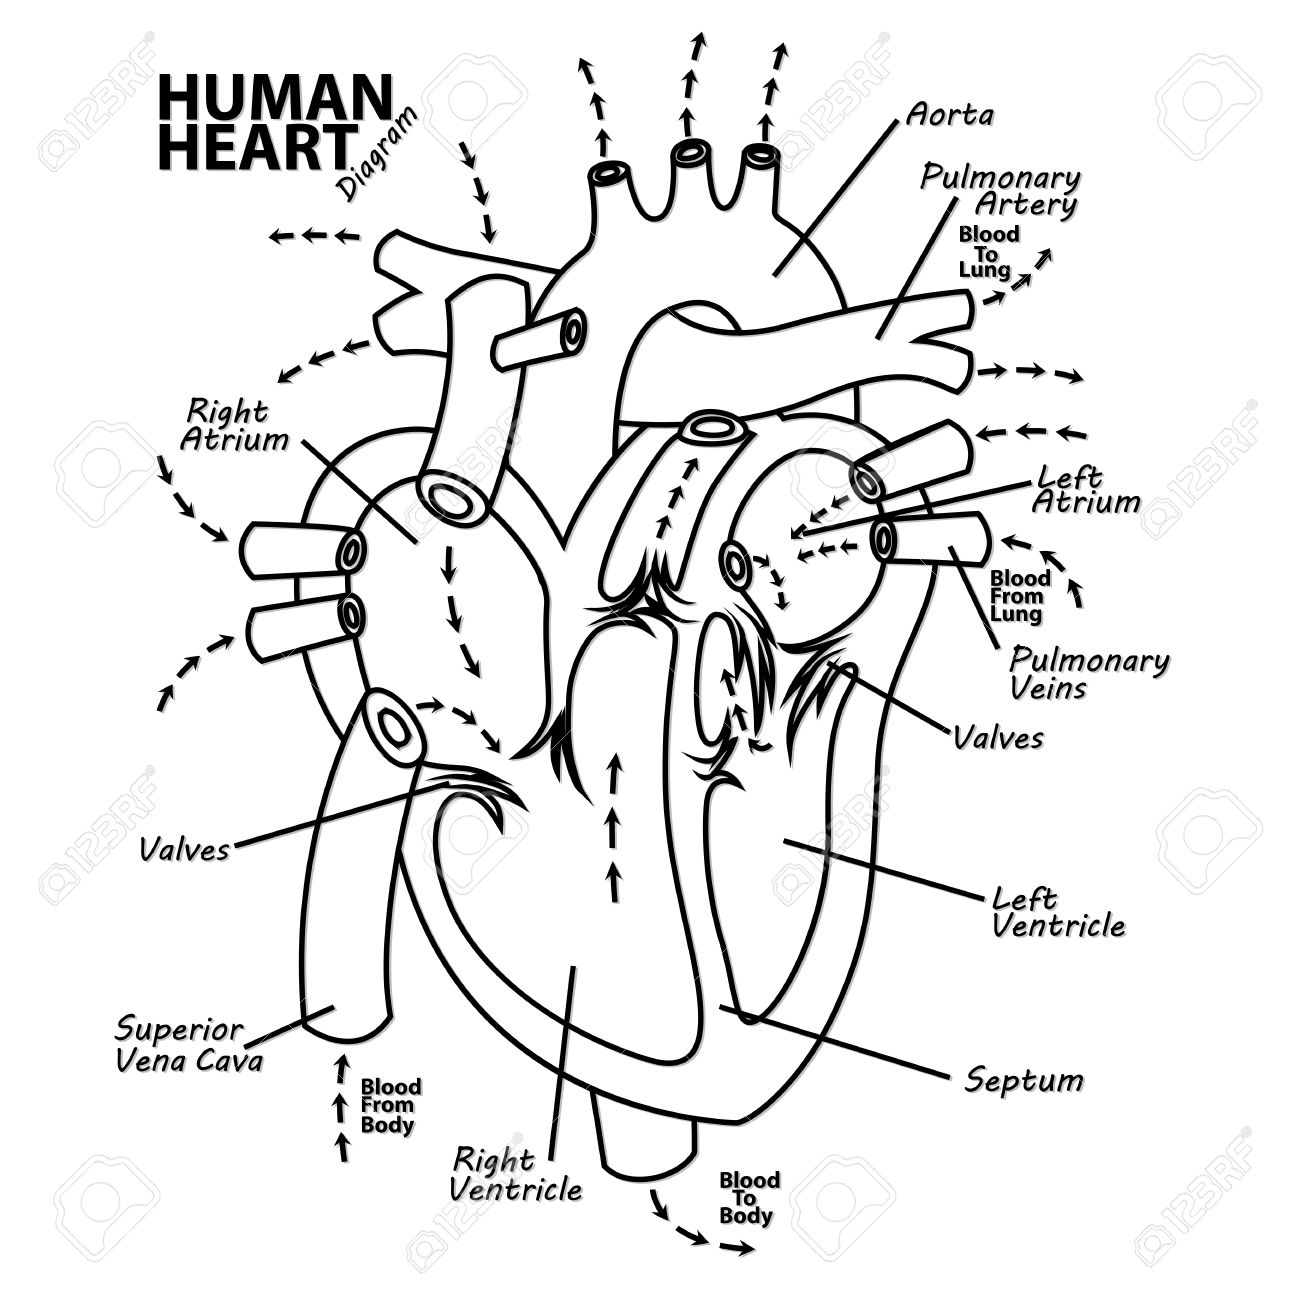 Human heart diagram anatomy tattoo royalty free cliparts vetores e human heart diagram anatomy tattoo imagens 45500459 ccuart Choice Image